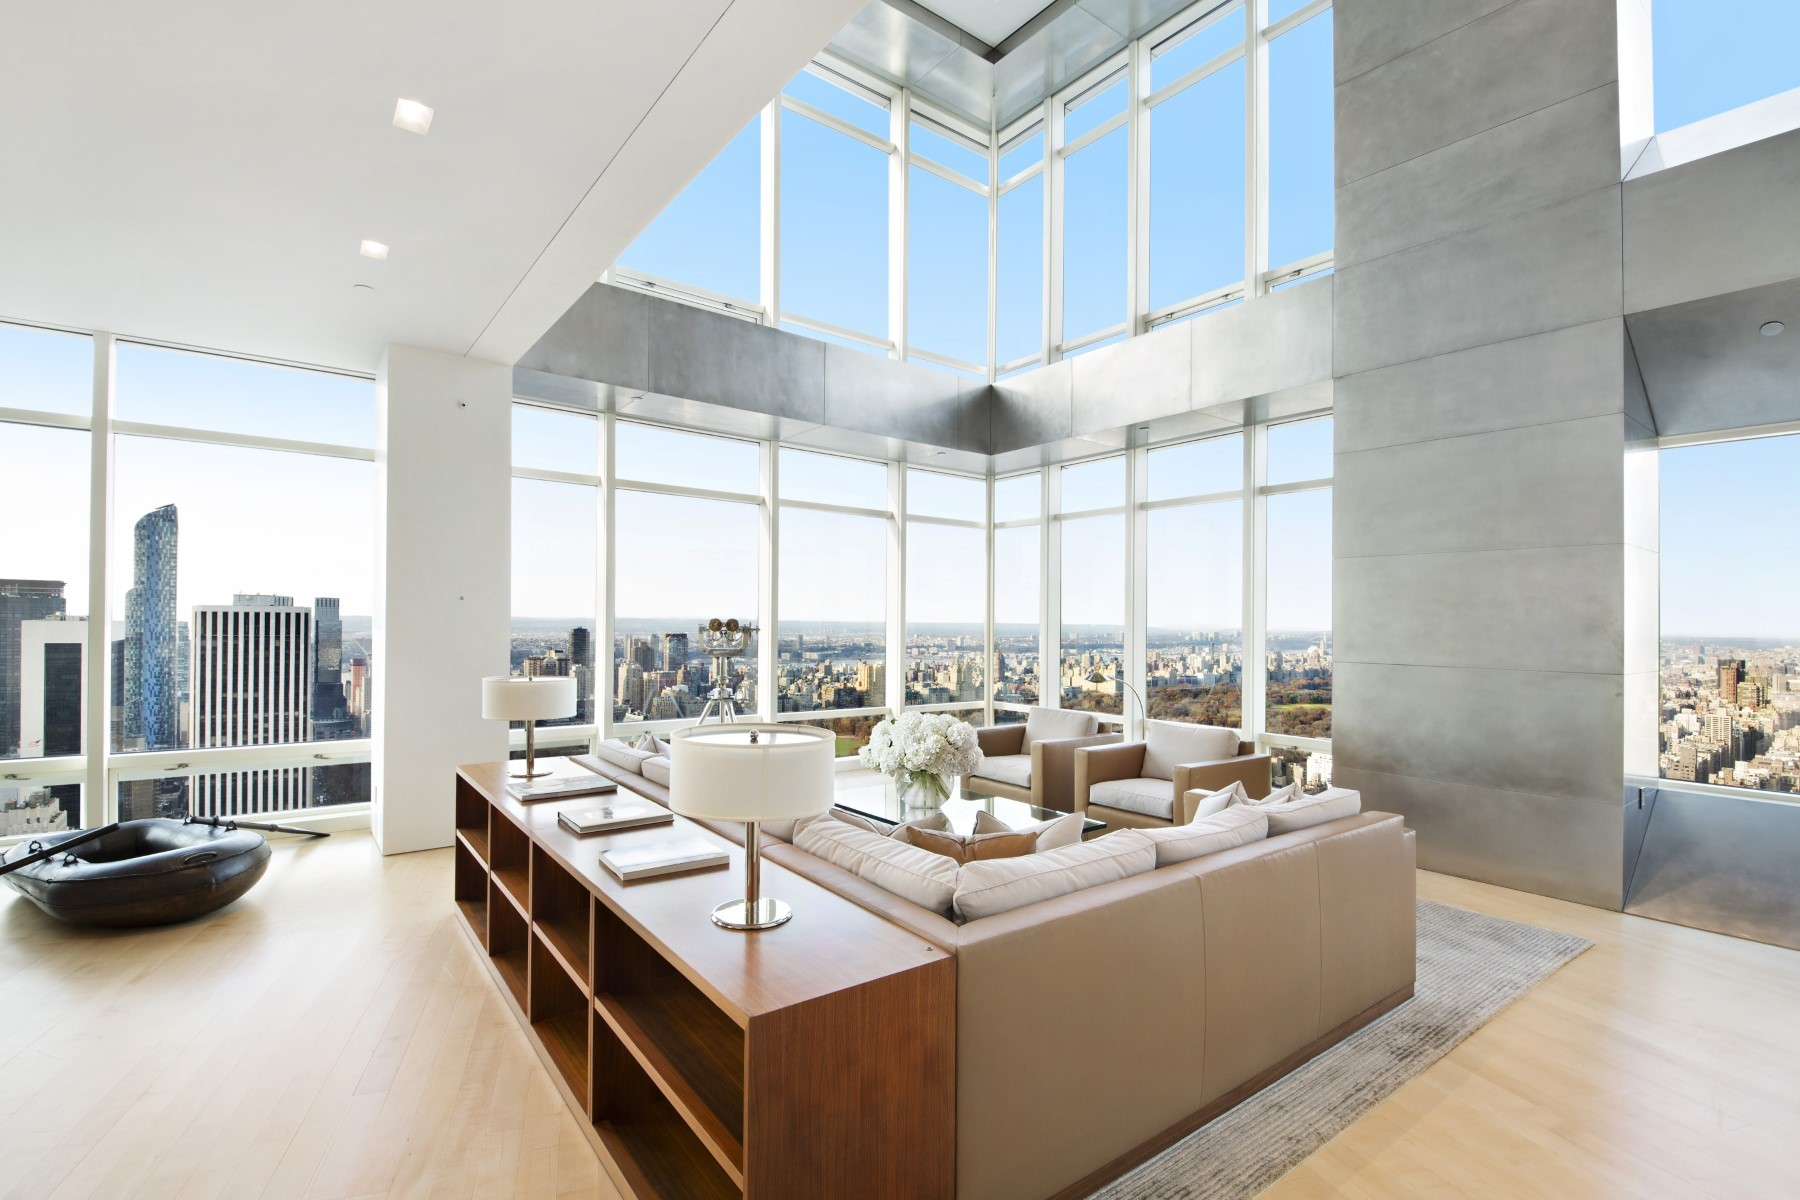 Phenomenal $82 Million Penthouse Apartment in New York ...